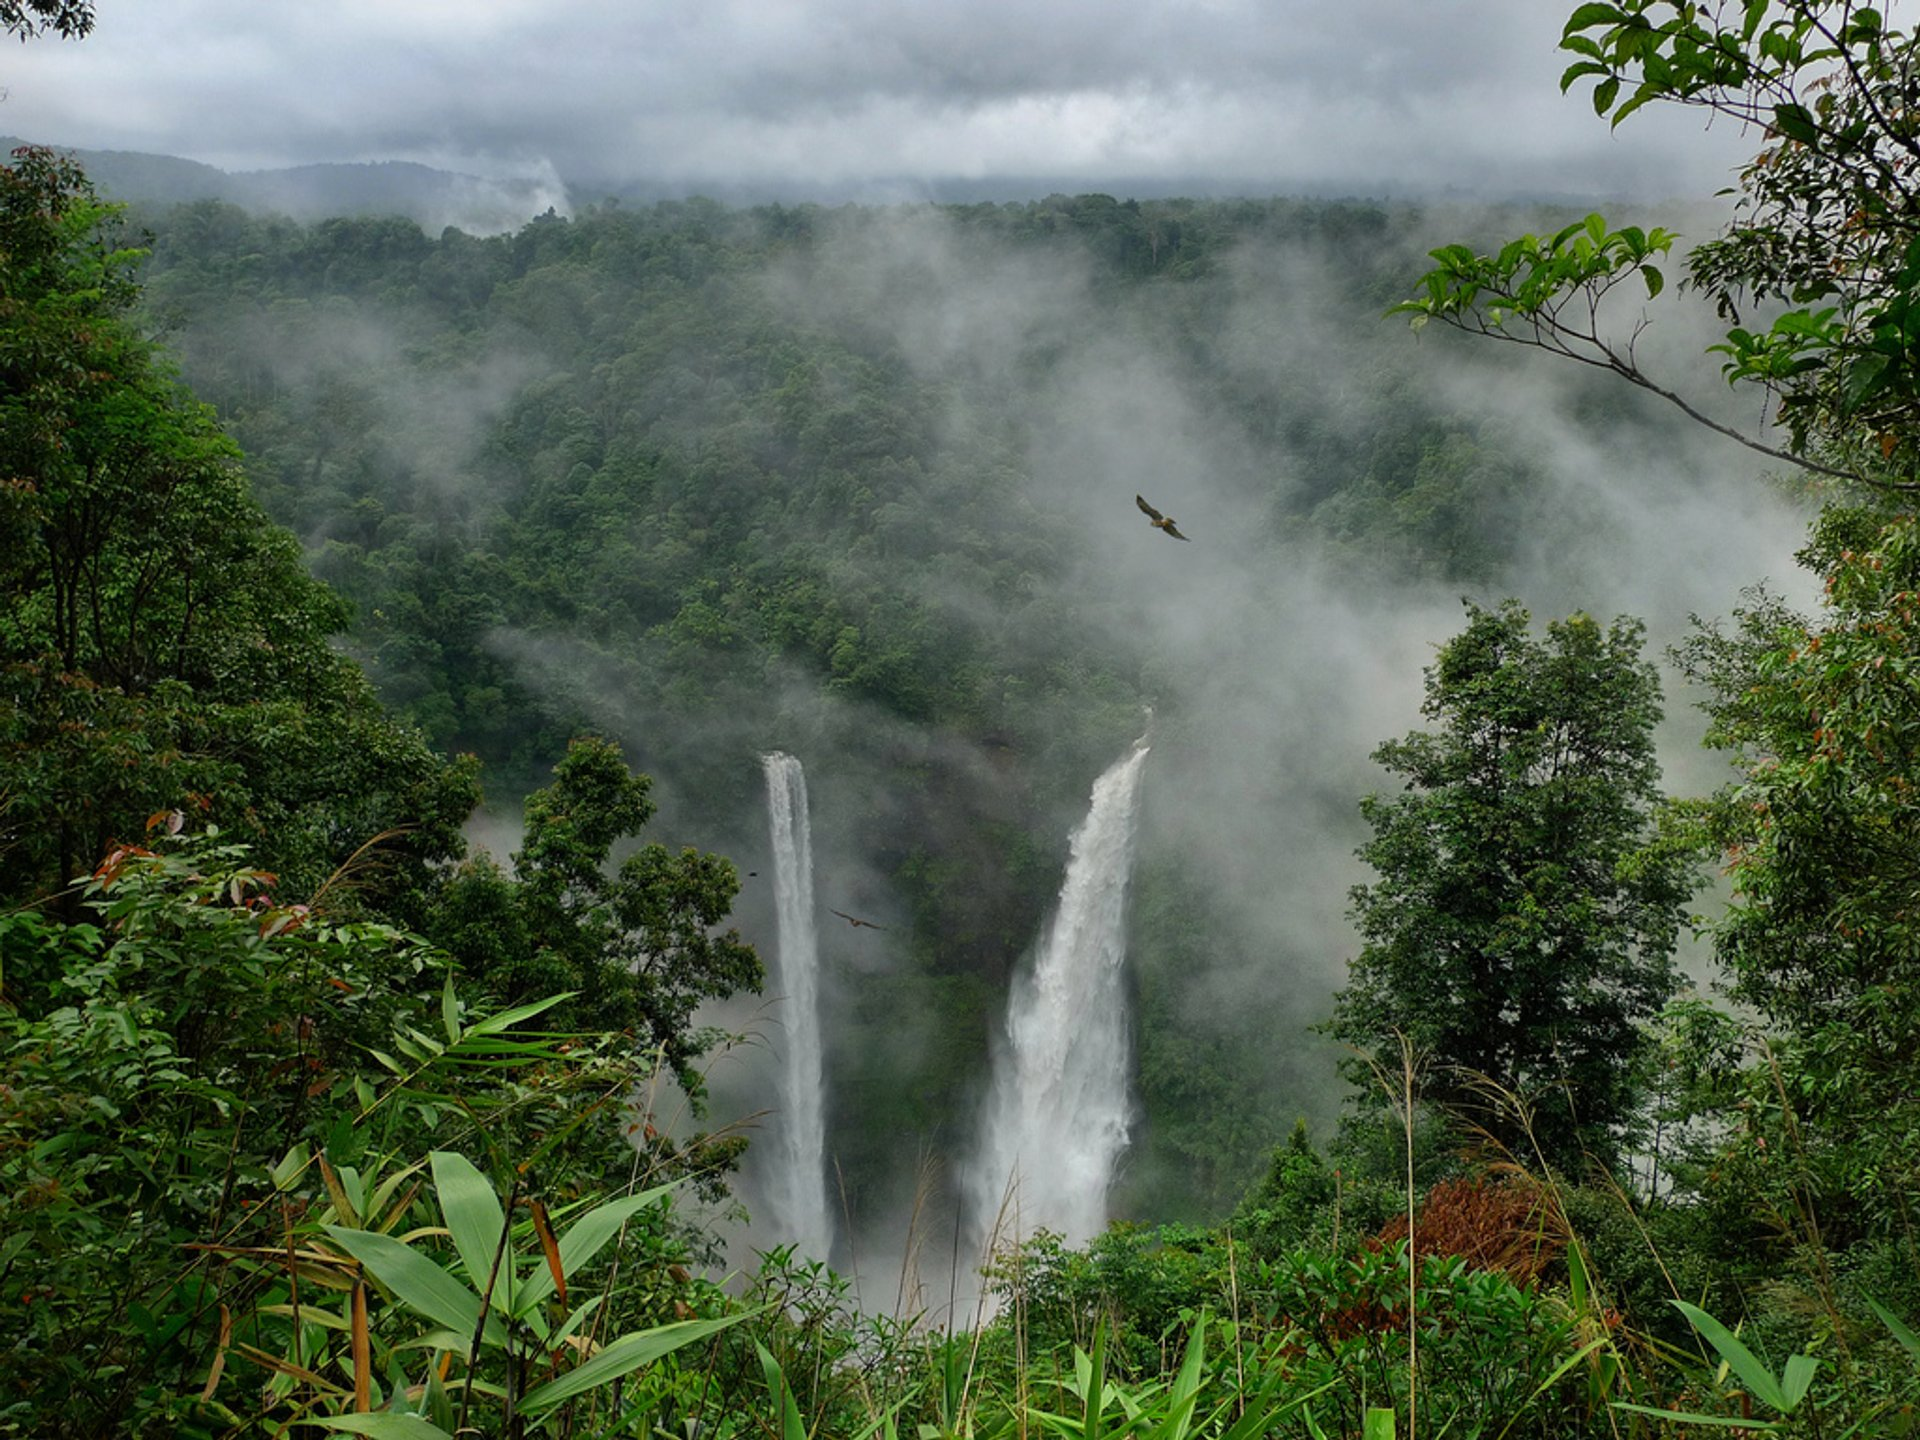 Trekking to Bolaven Plateau & Tad Fane Waterfall in Laos 2020 - Best Time